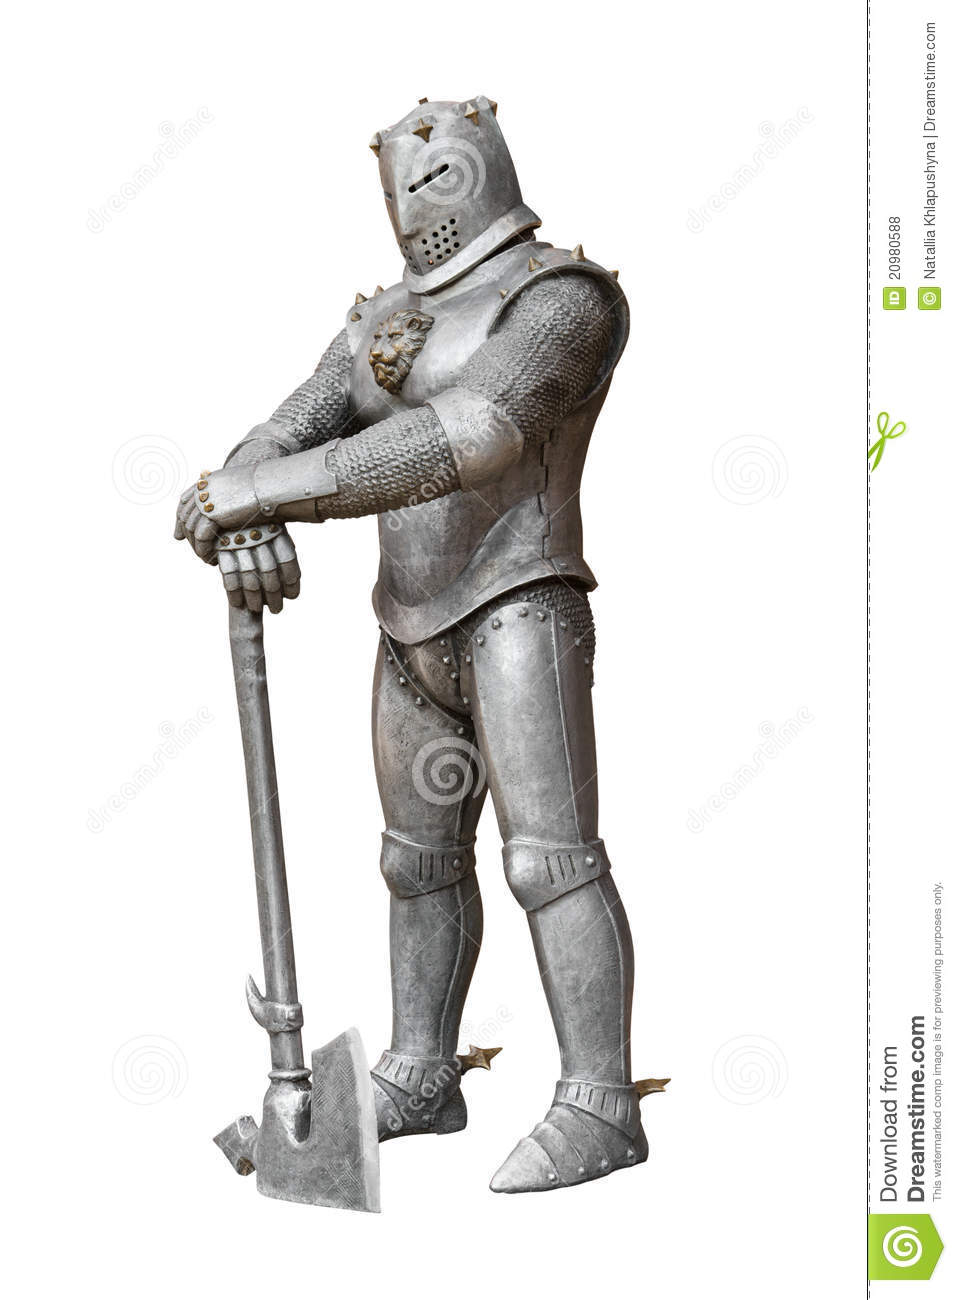 Medieval Knight Weapons And Armor